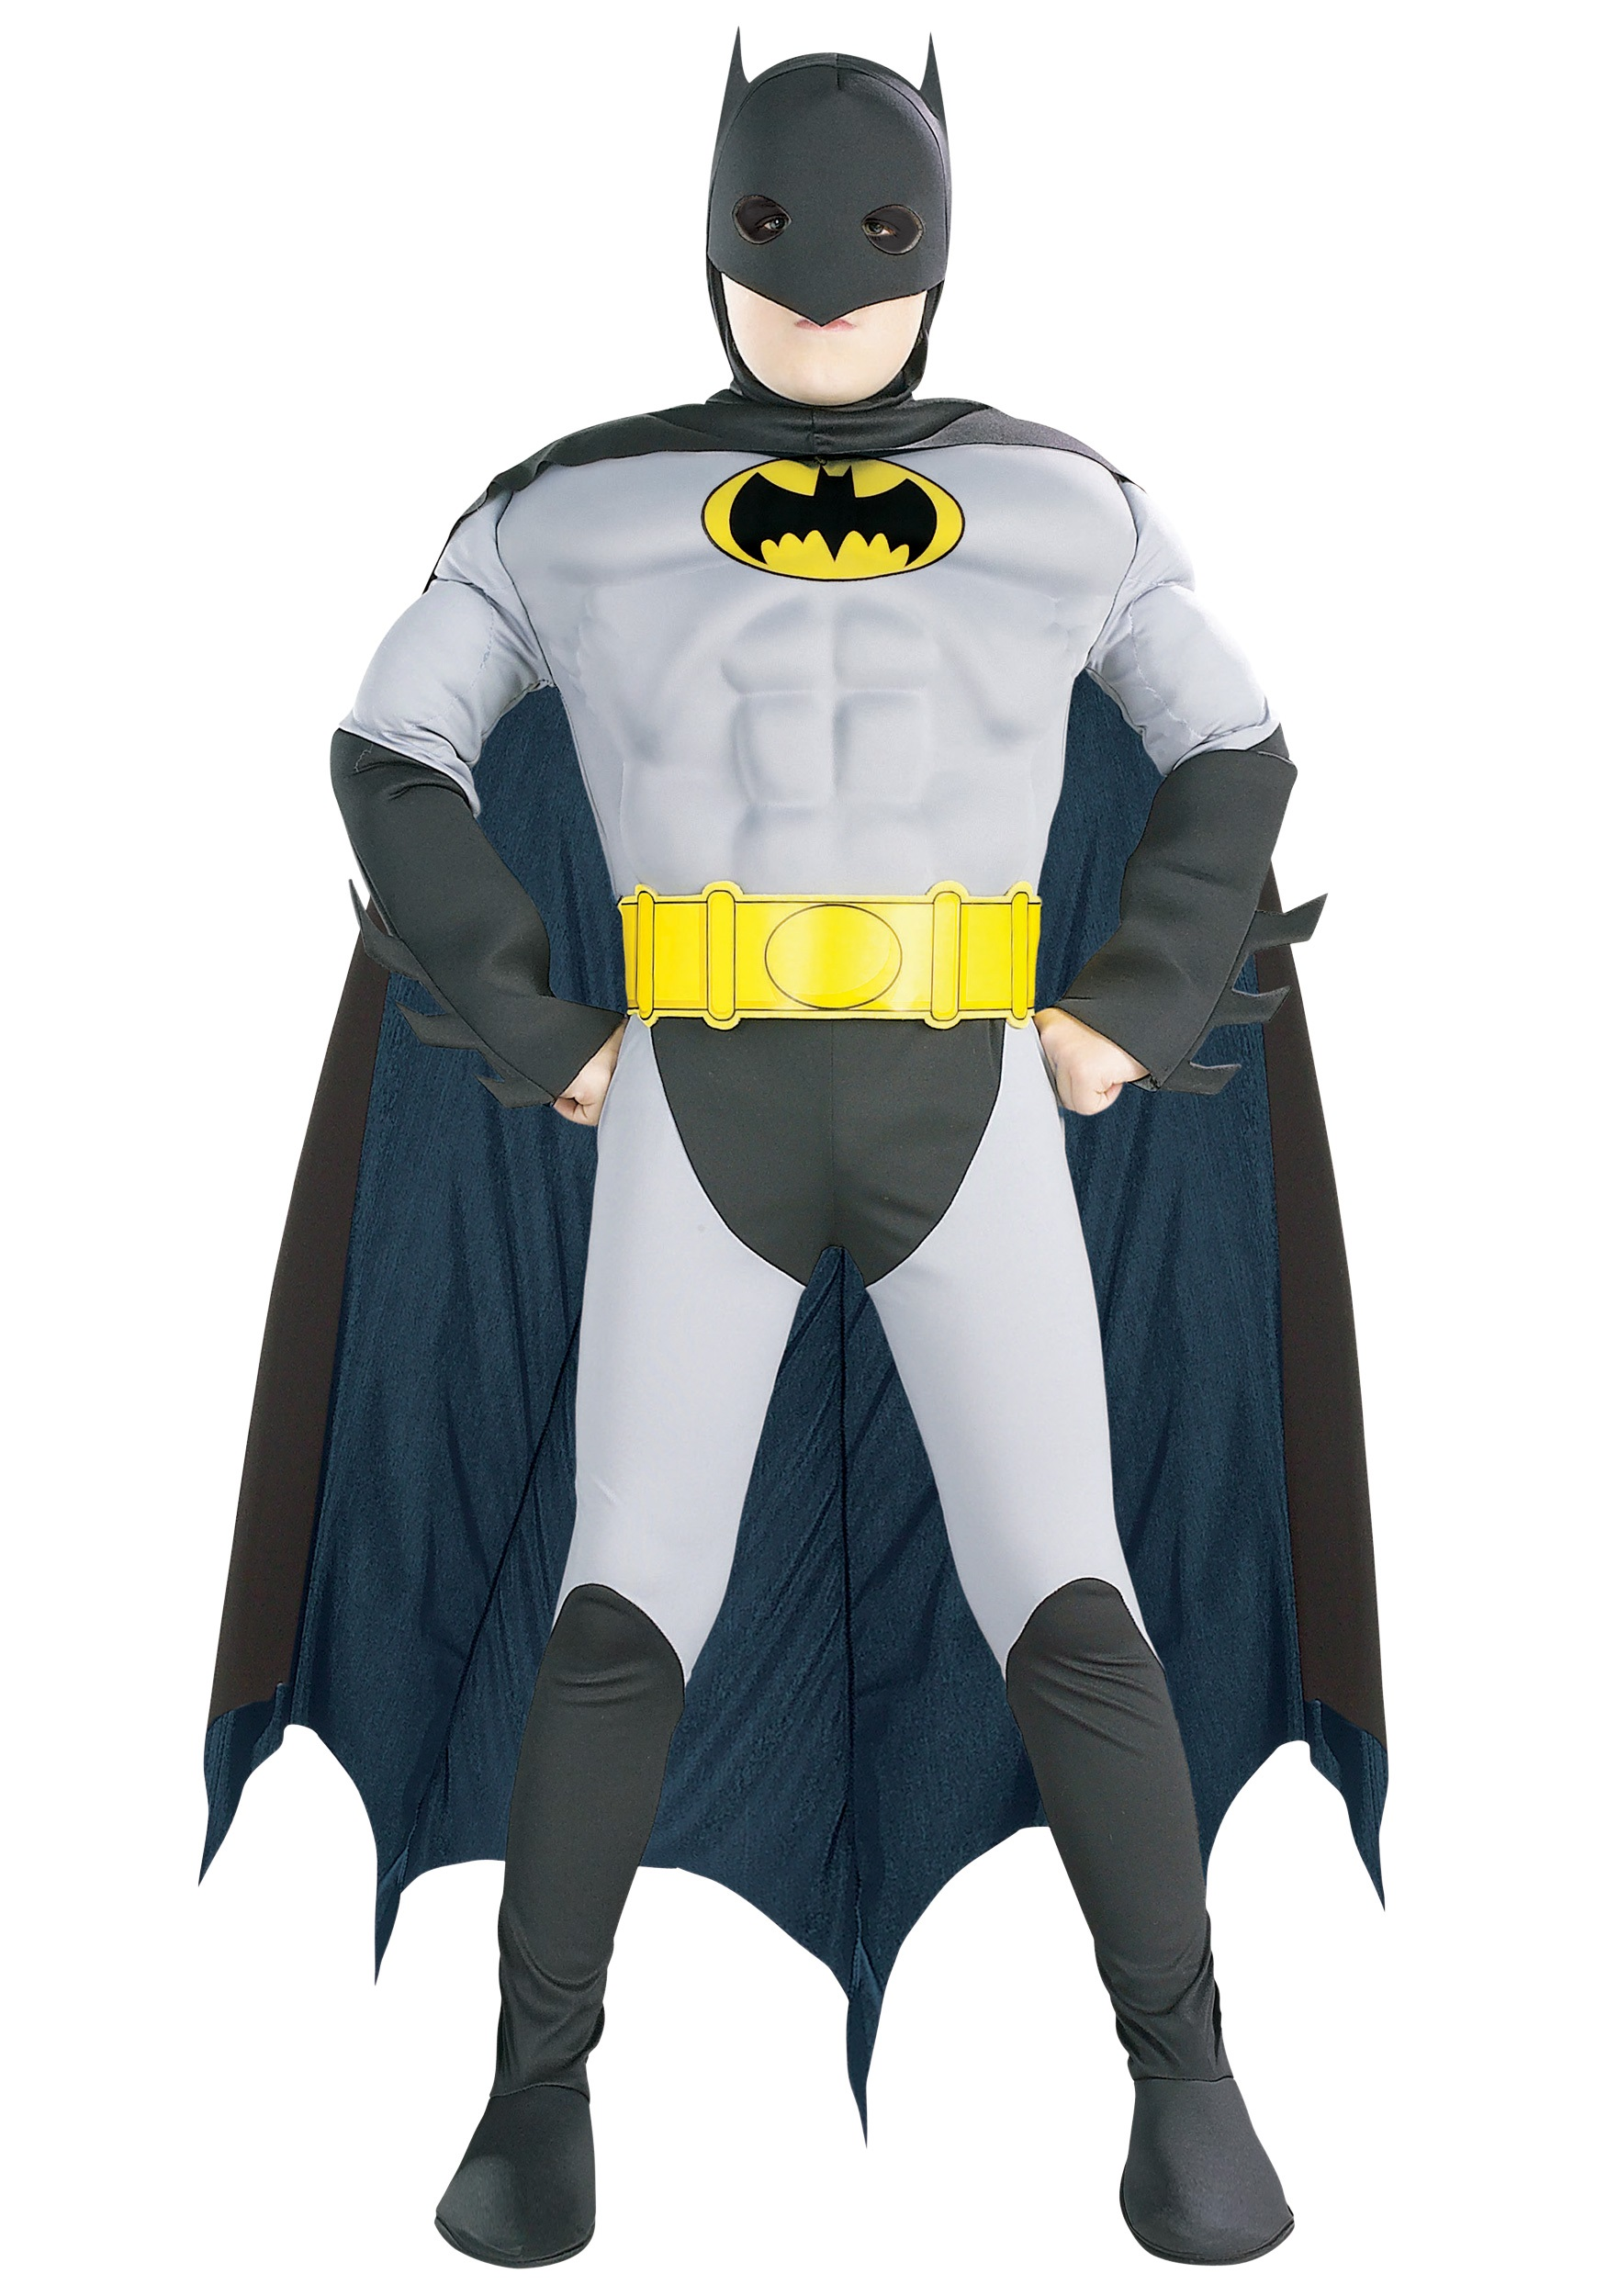 Justice league costumes halloweencostumes kids batman costume solutioingenieria Image collections